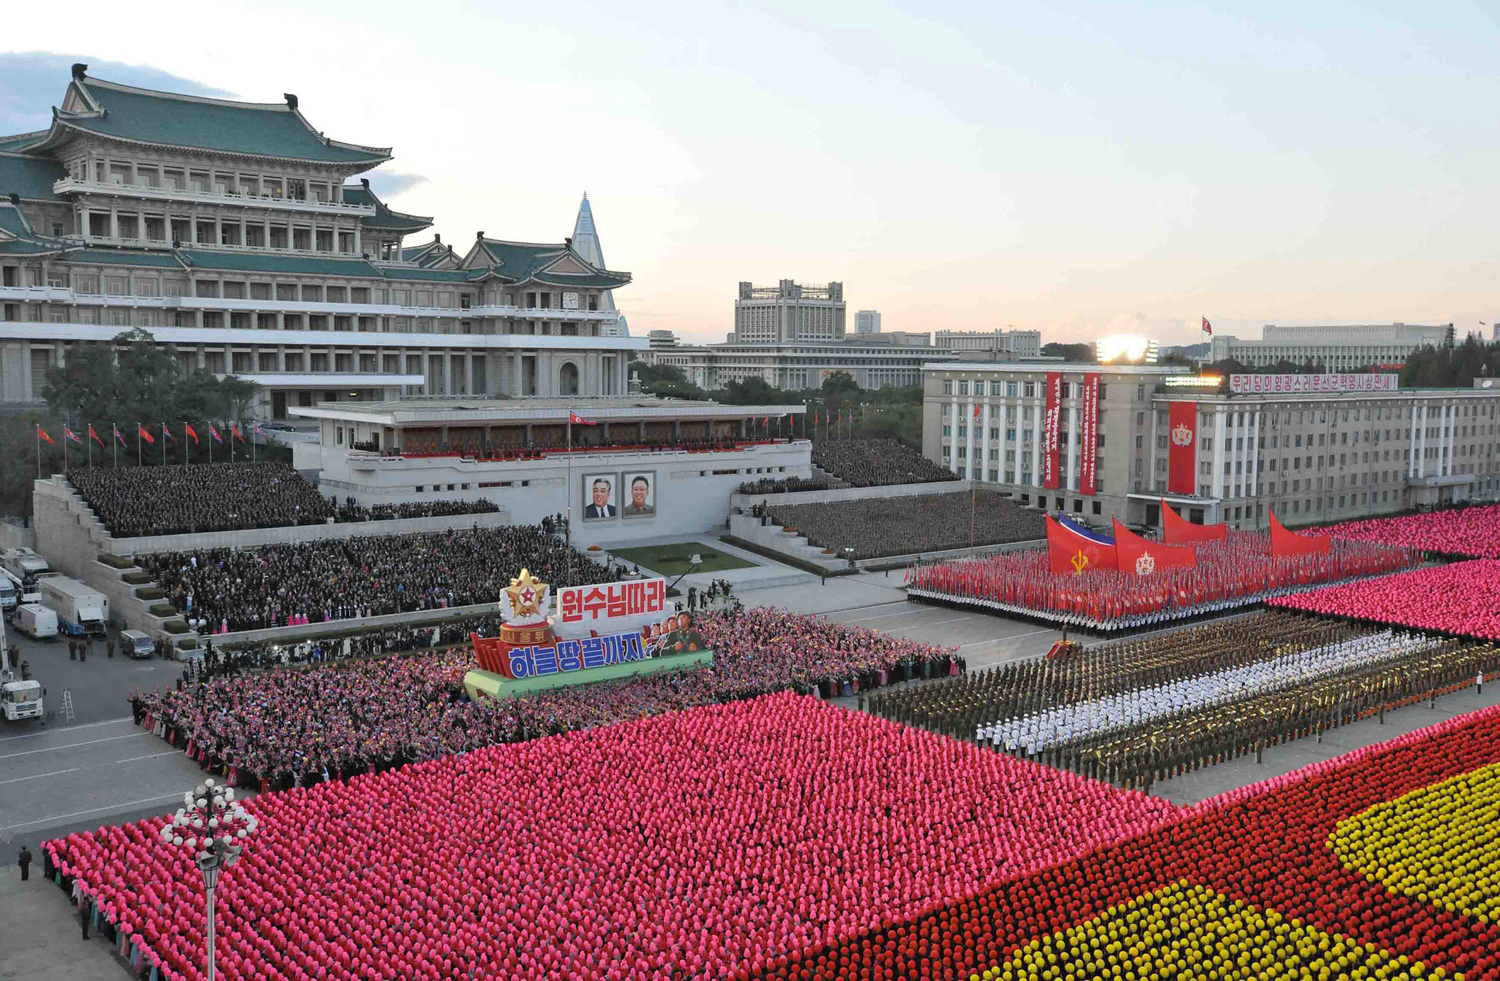 North Korea Marks 70 Years of Workers' Party Rule 06